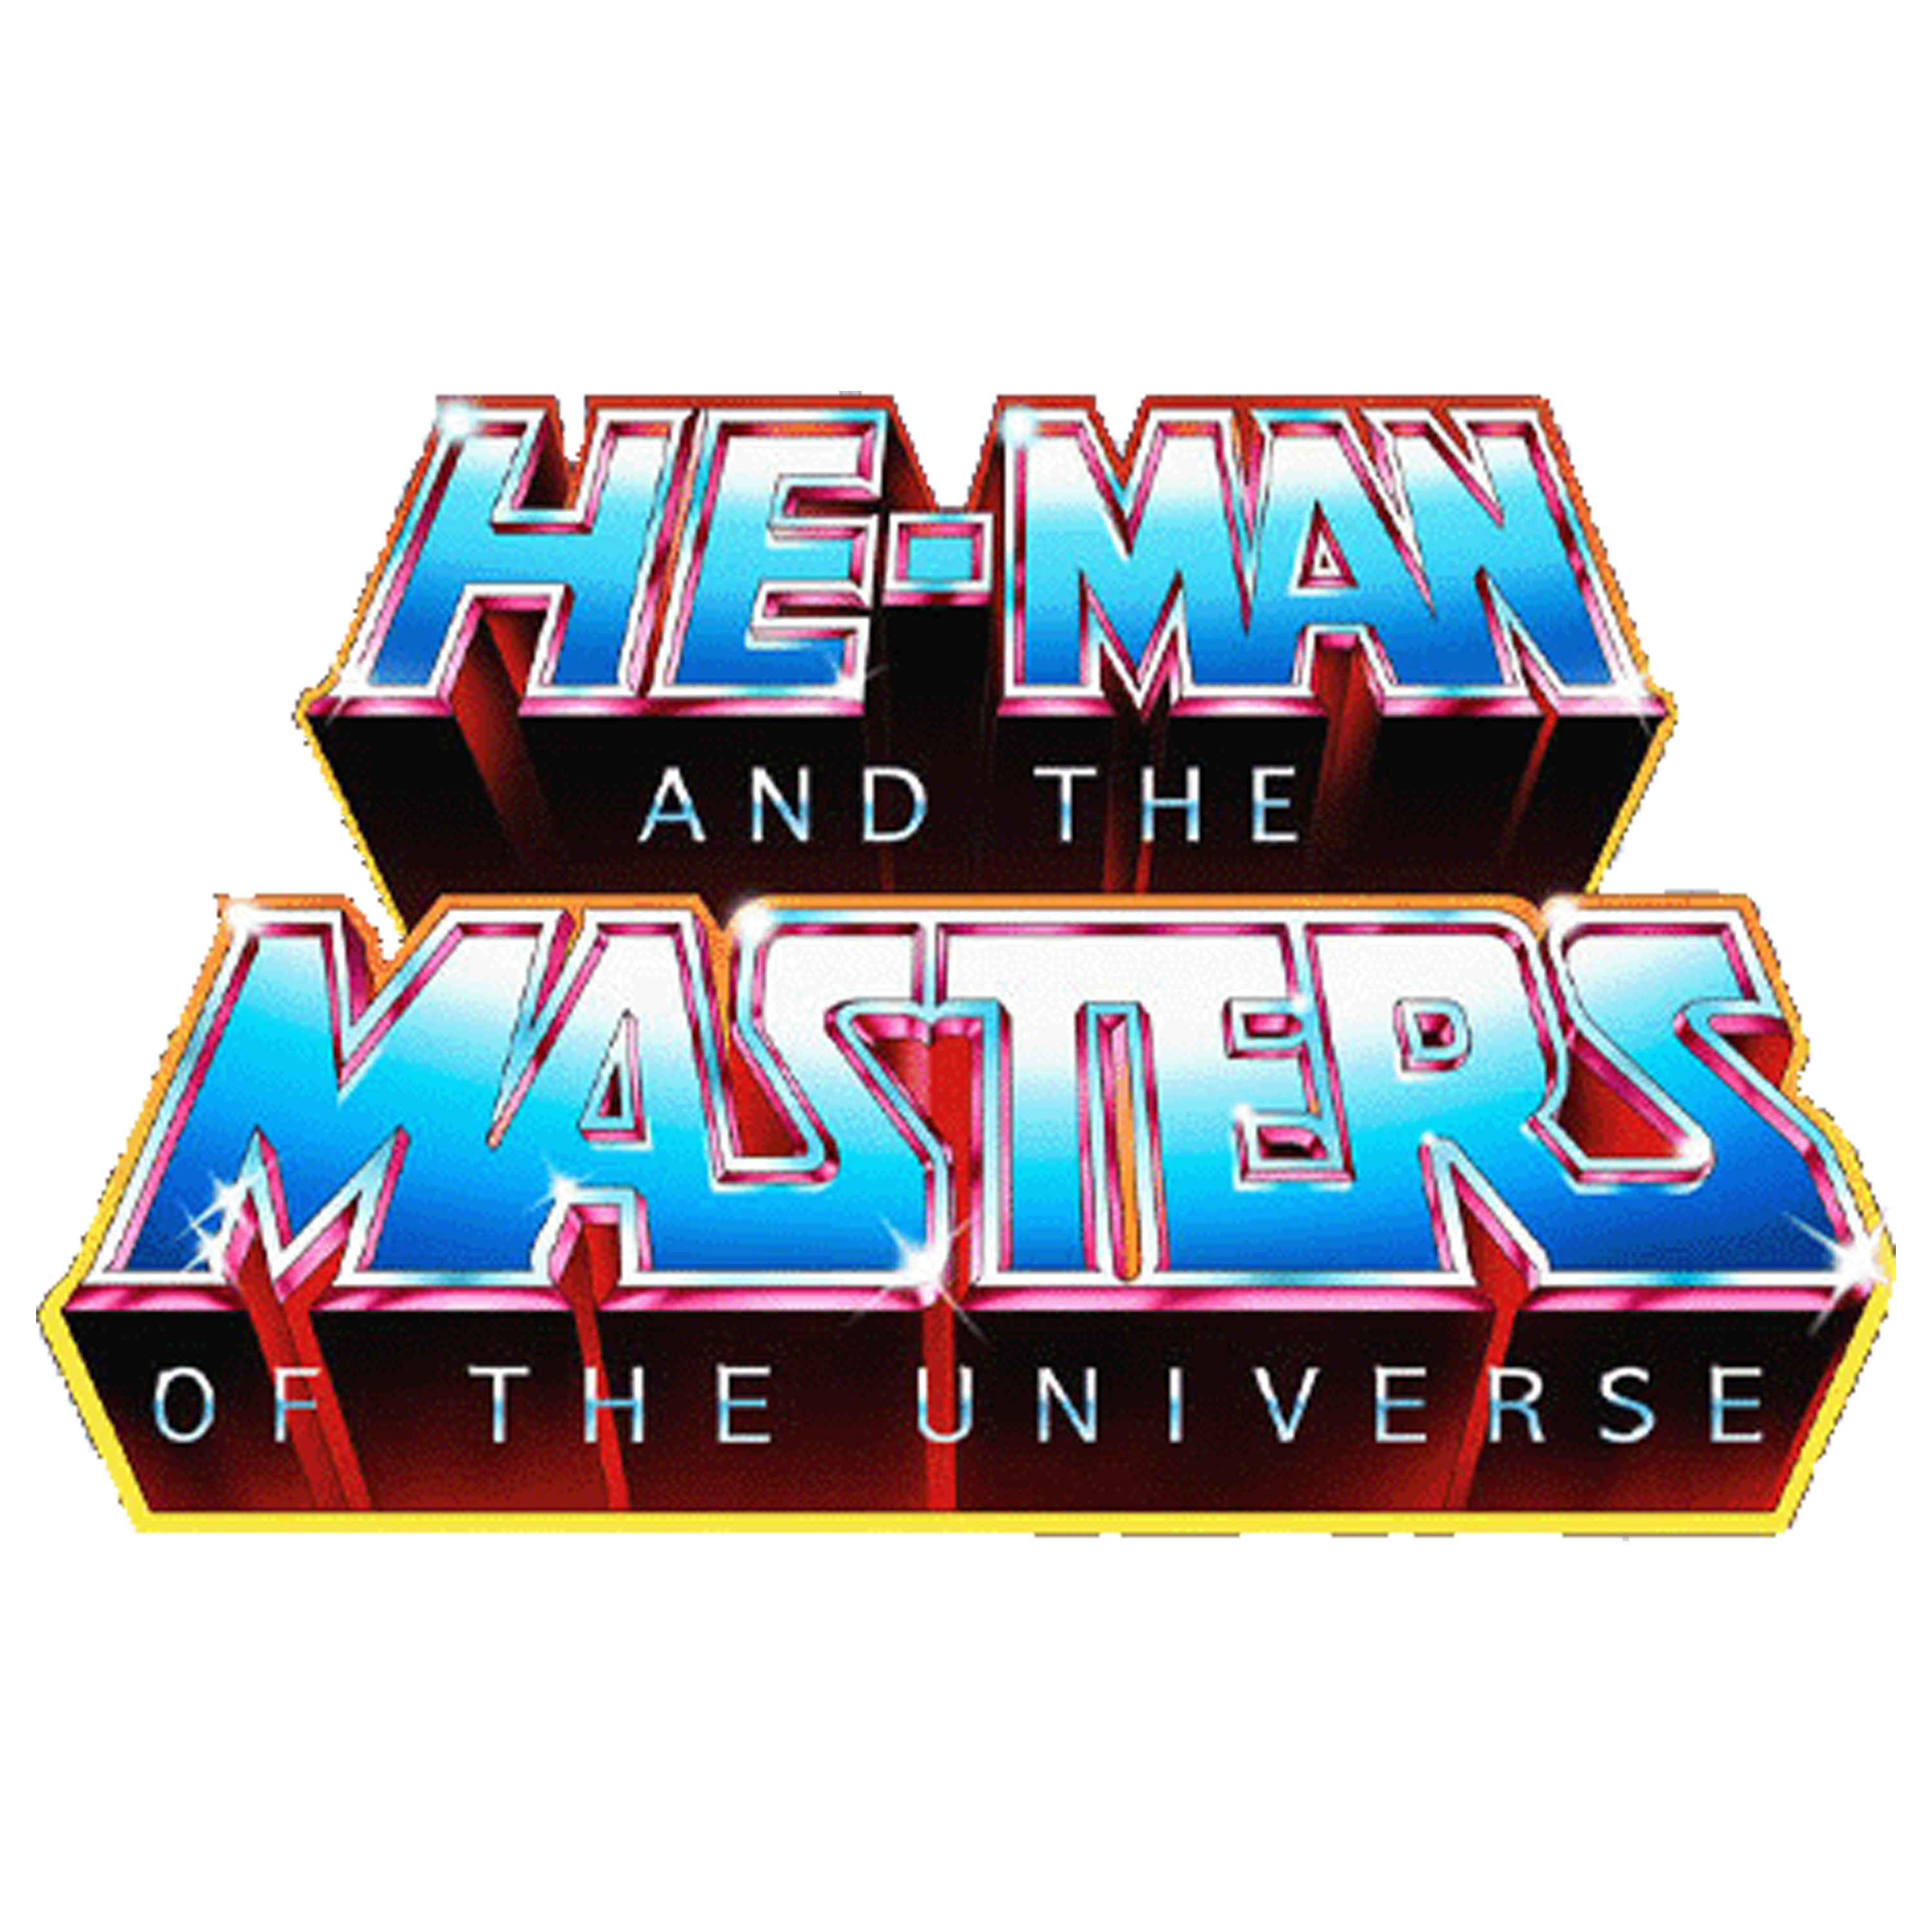 Pin De Bill Chauncey Em Masters Of The Universe Related Animacao Desenhos